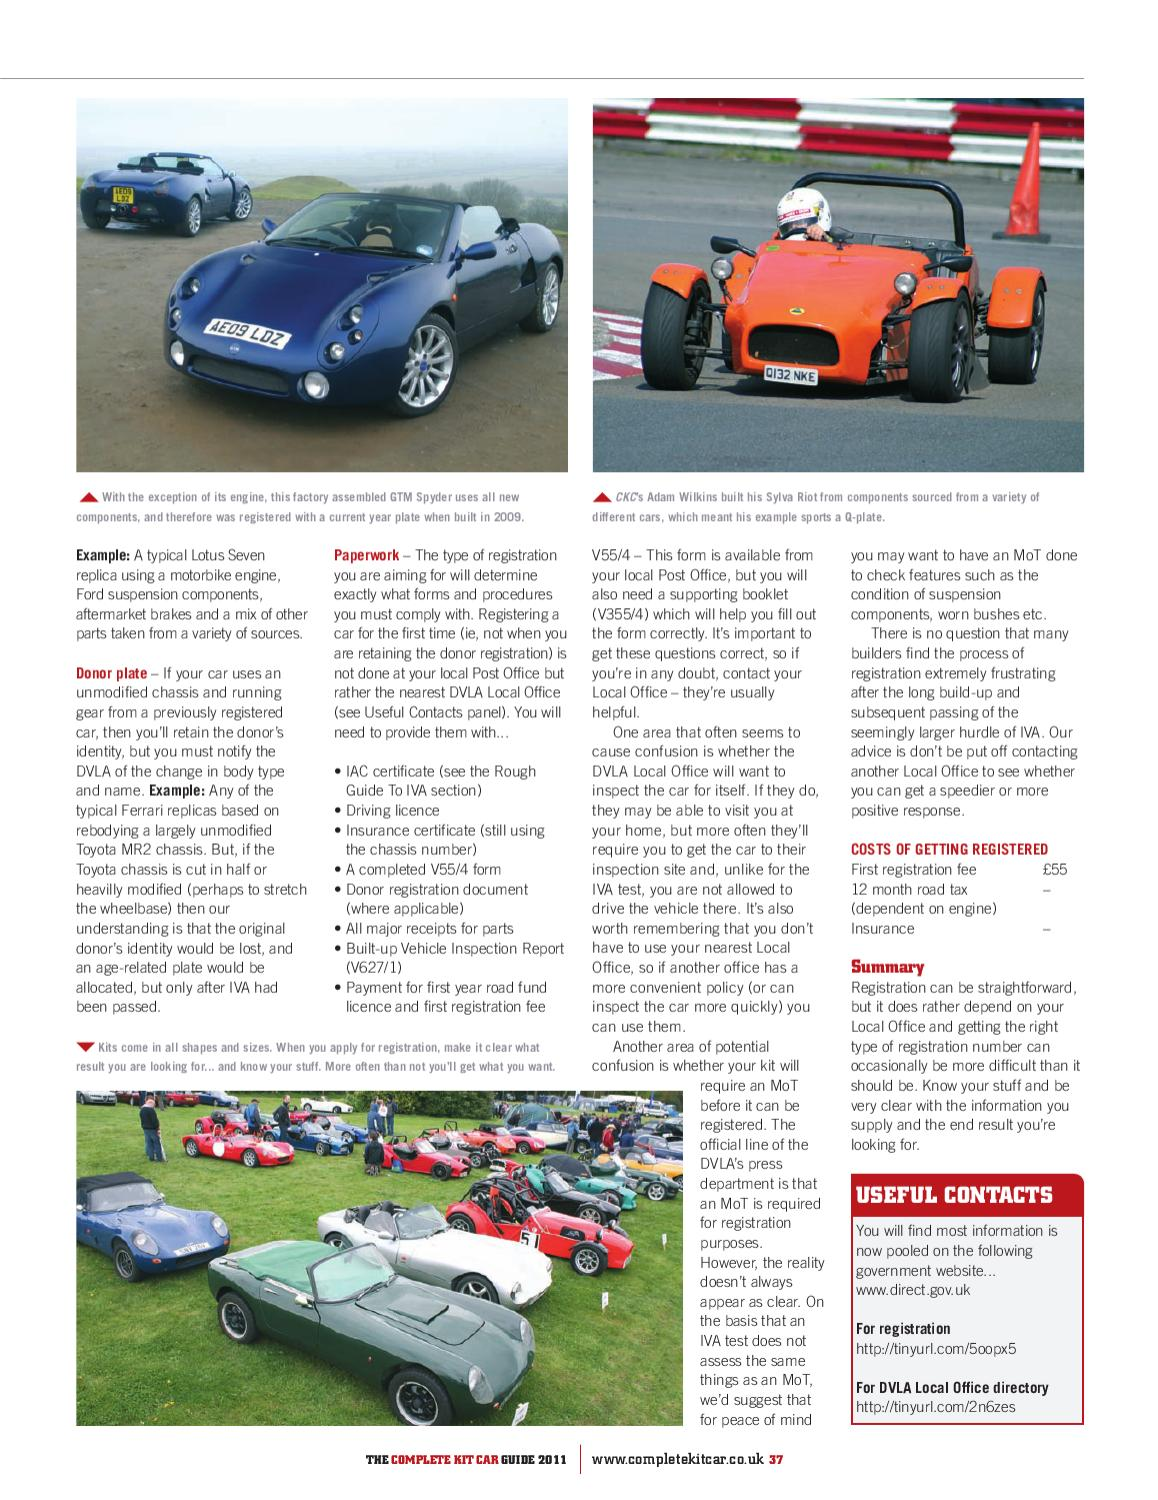 Complete Kit Car Guide 2011 by Performance Publishing Ltd - issuu